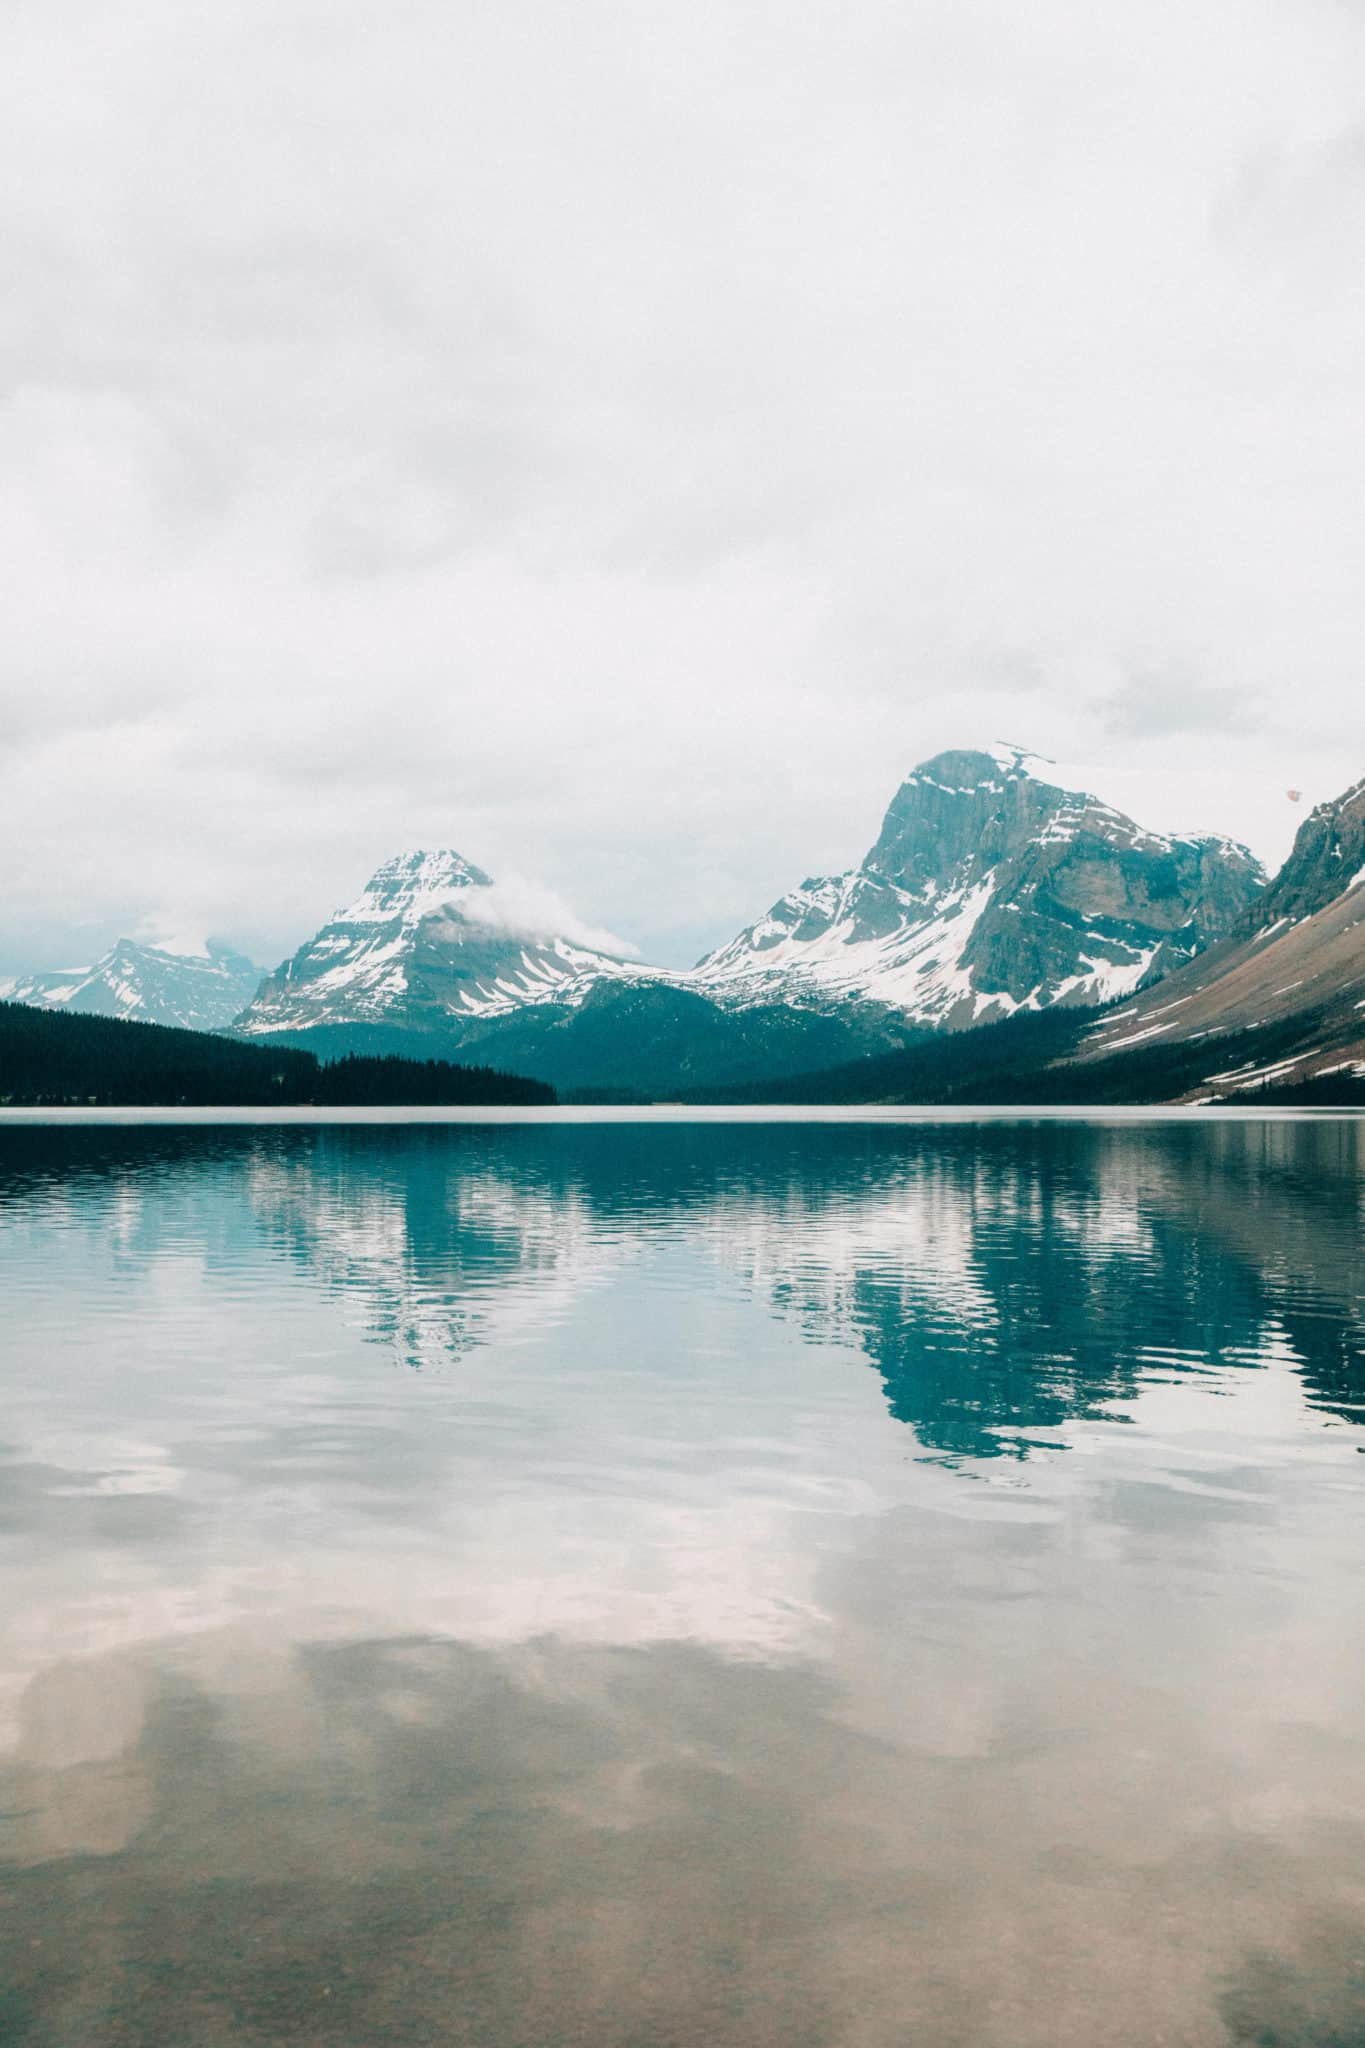 Amazing Photo Spots In Banff National Park - Bow Lake Reflection